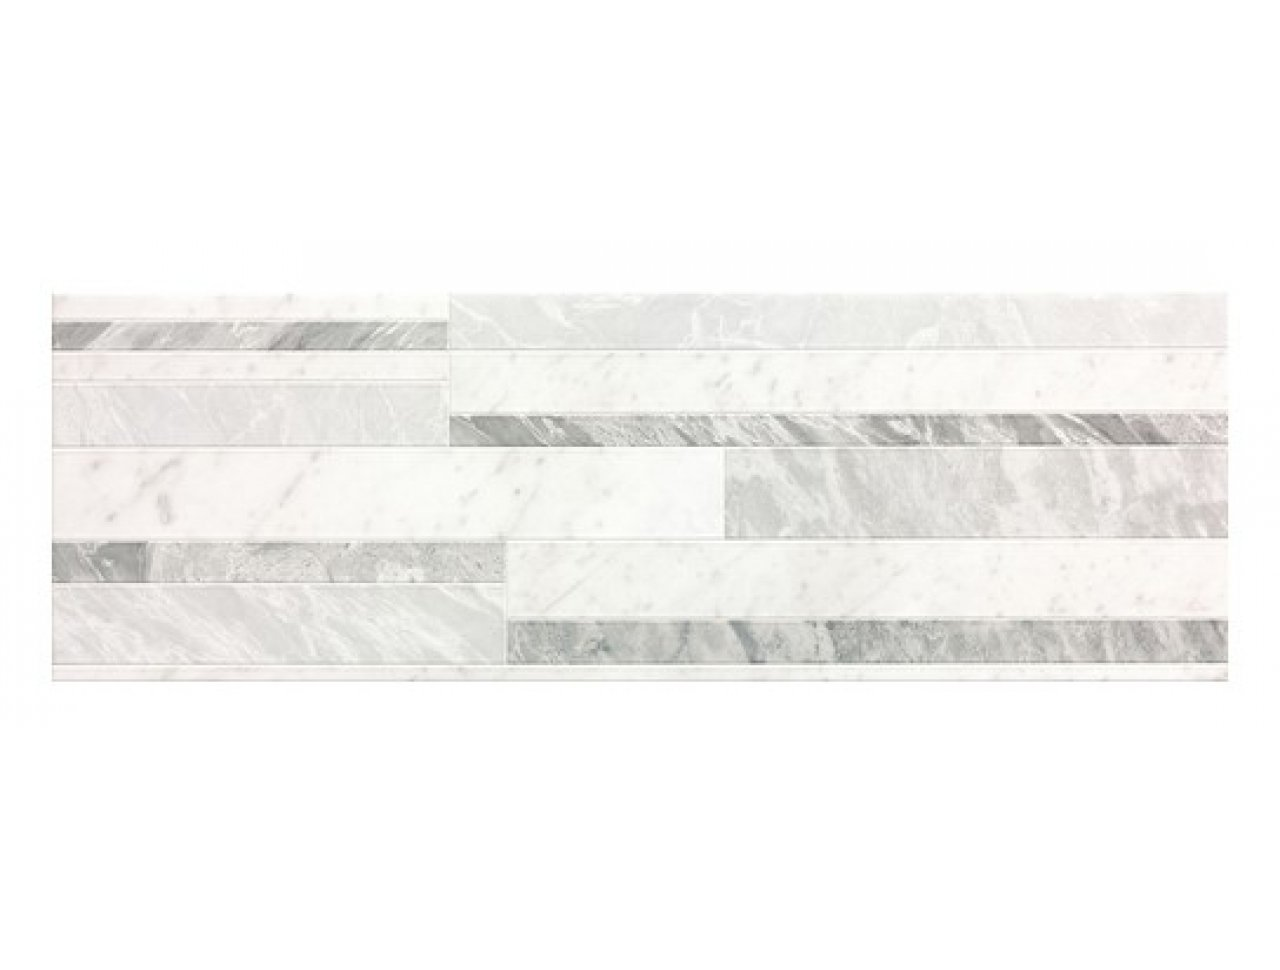 Настенная плитка FAP Roma Diamond Deco White Brillante 75 x 25 см, Арт. fNIZ